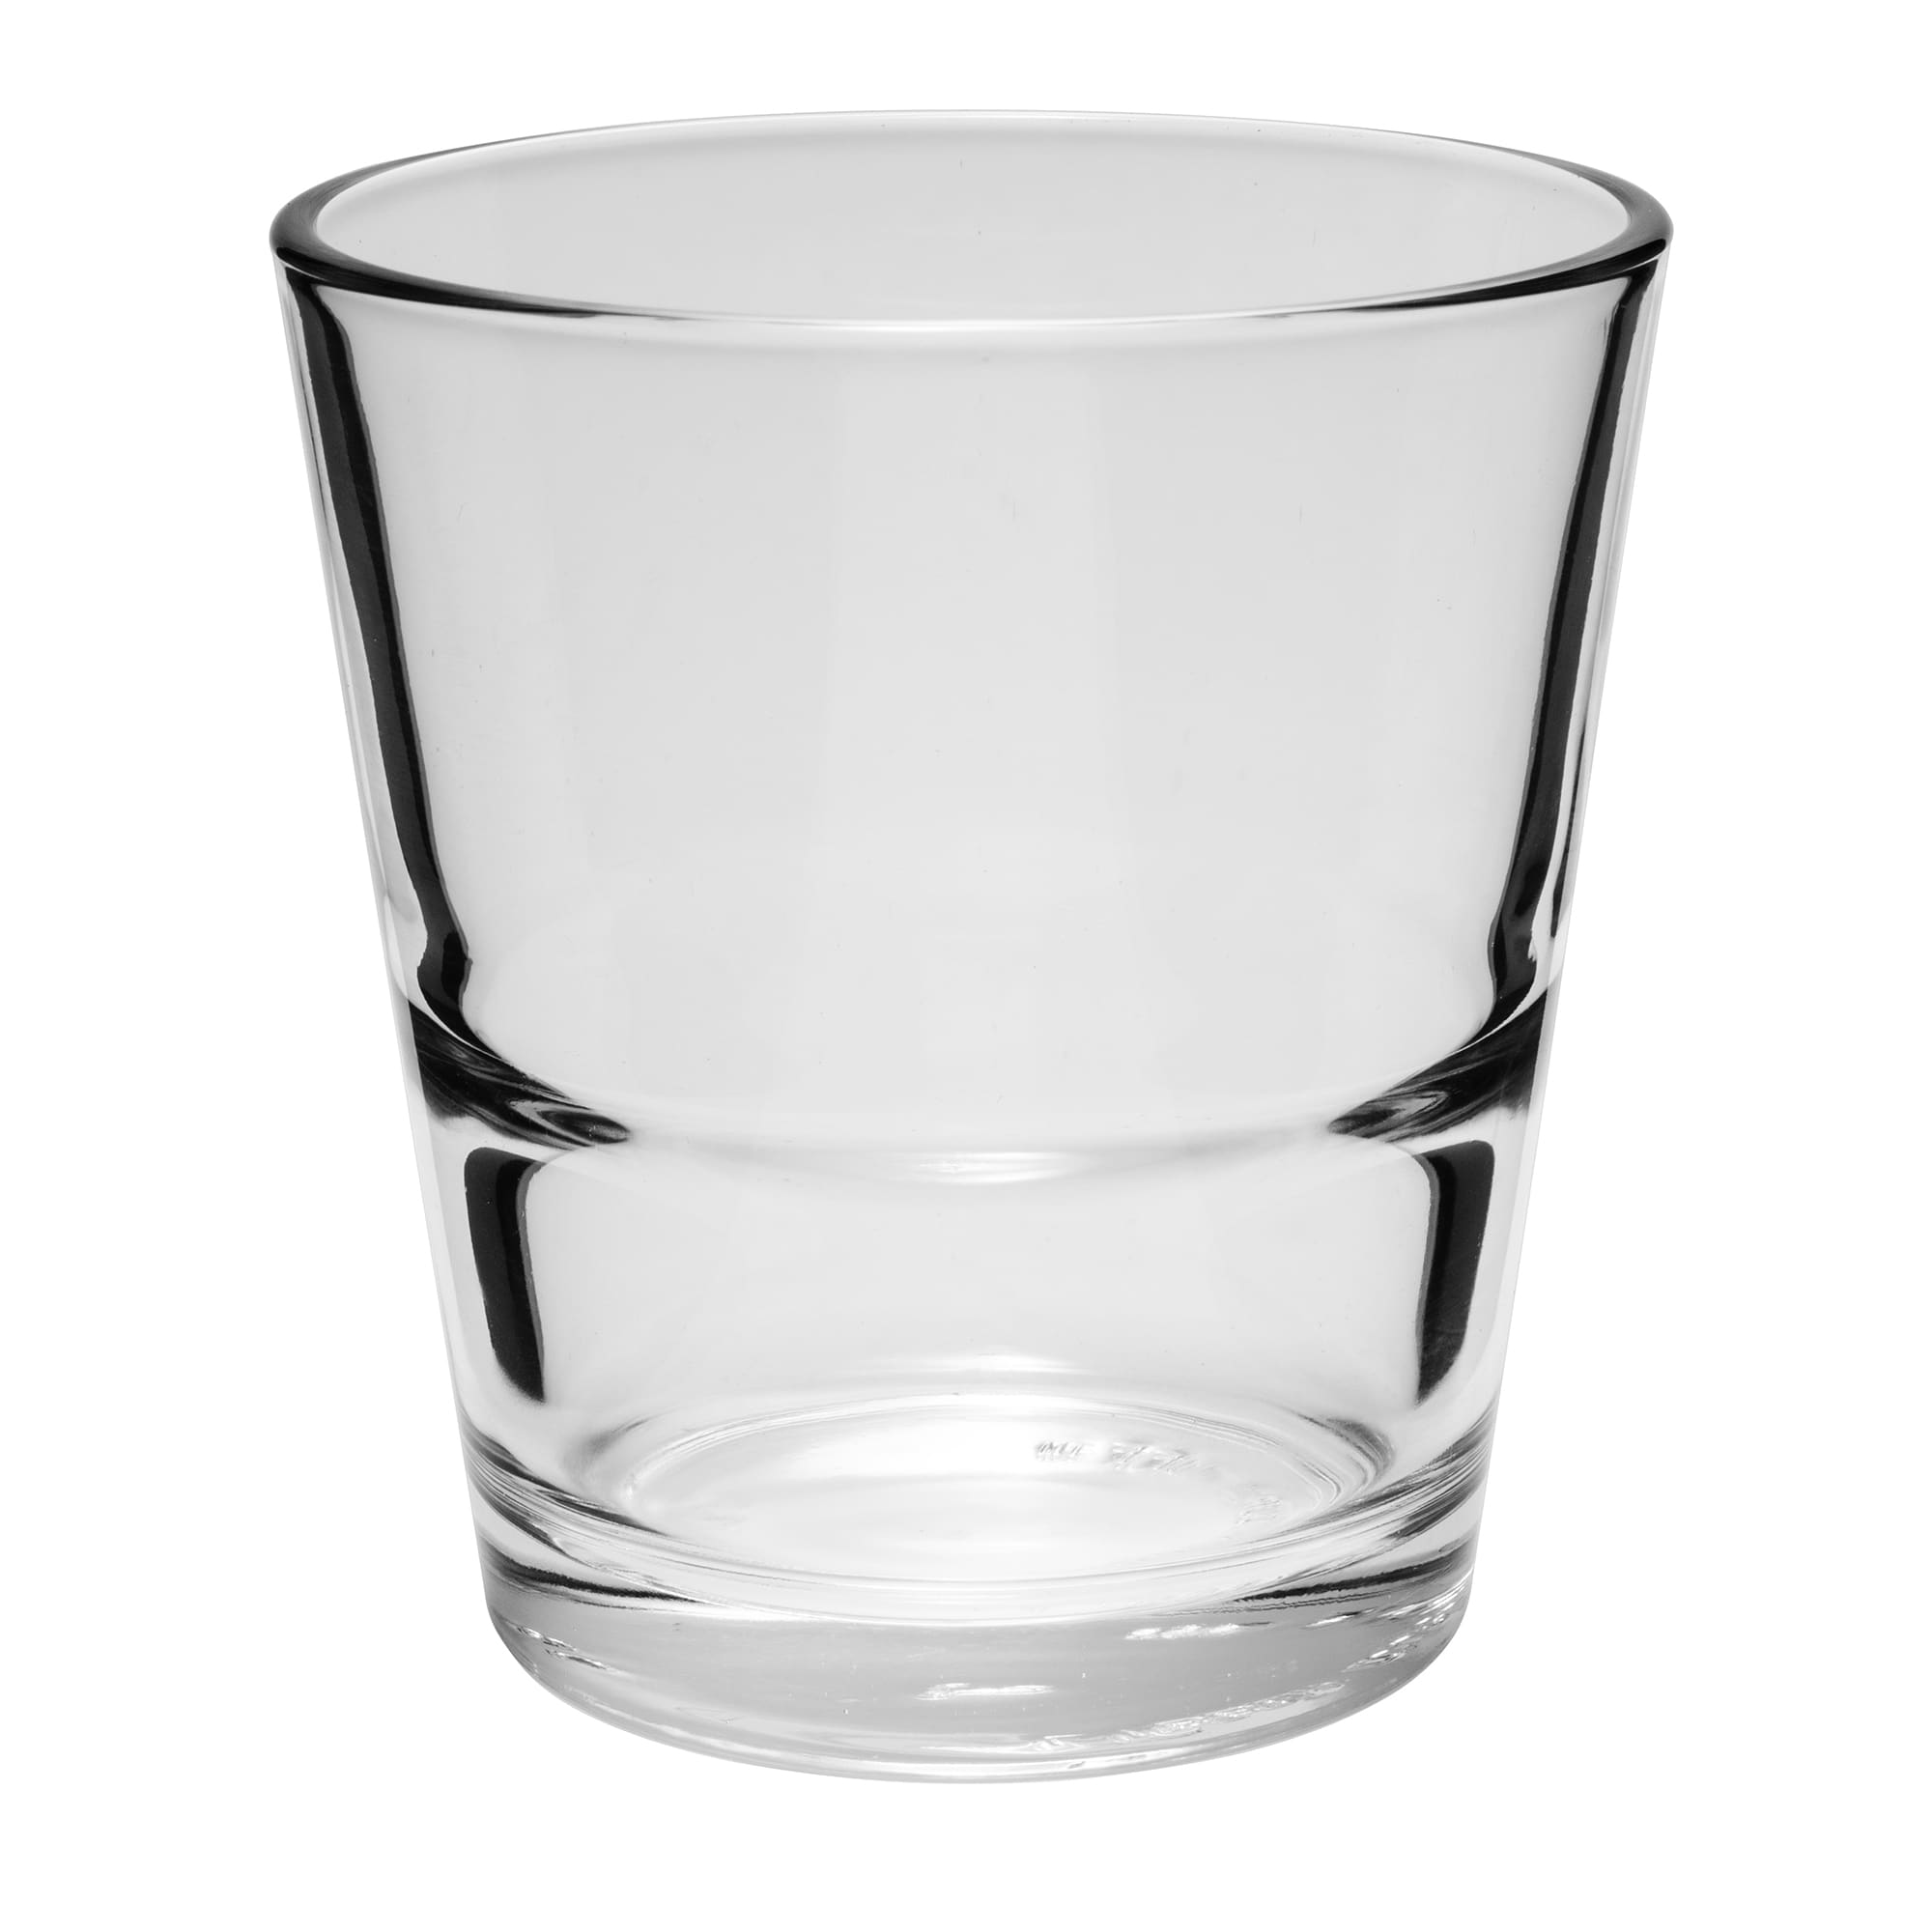 Libbey 15766 9-oz Rocks Glass - Restaurant Basics, Stackable